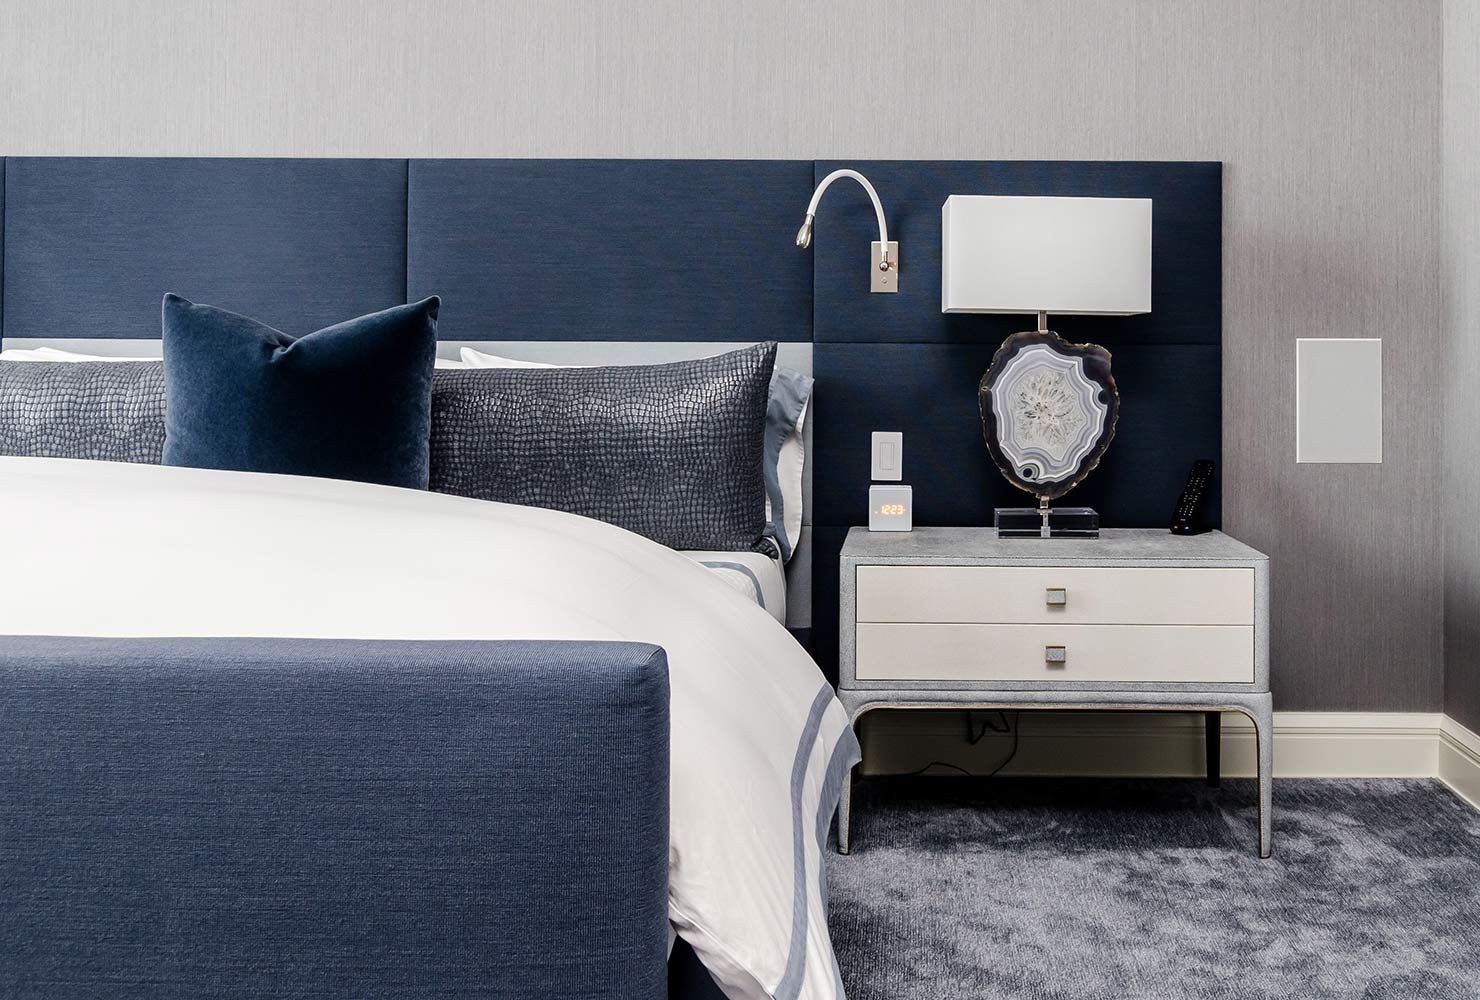 Blue and gray bedroom decor.